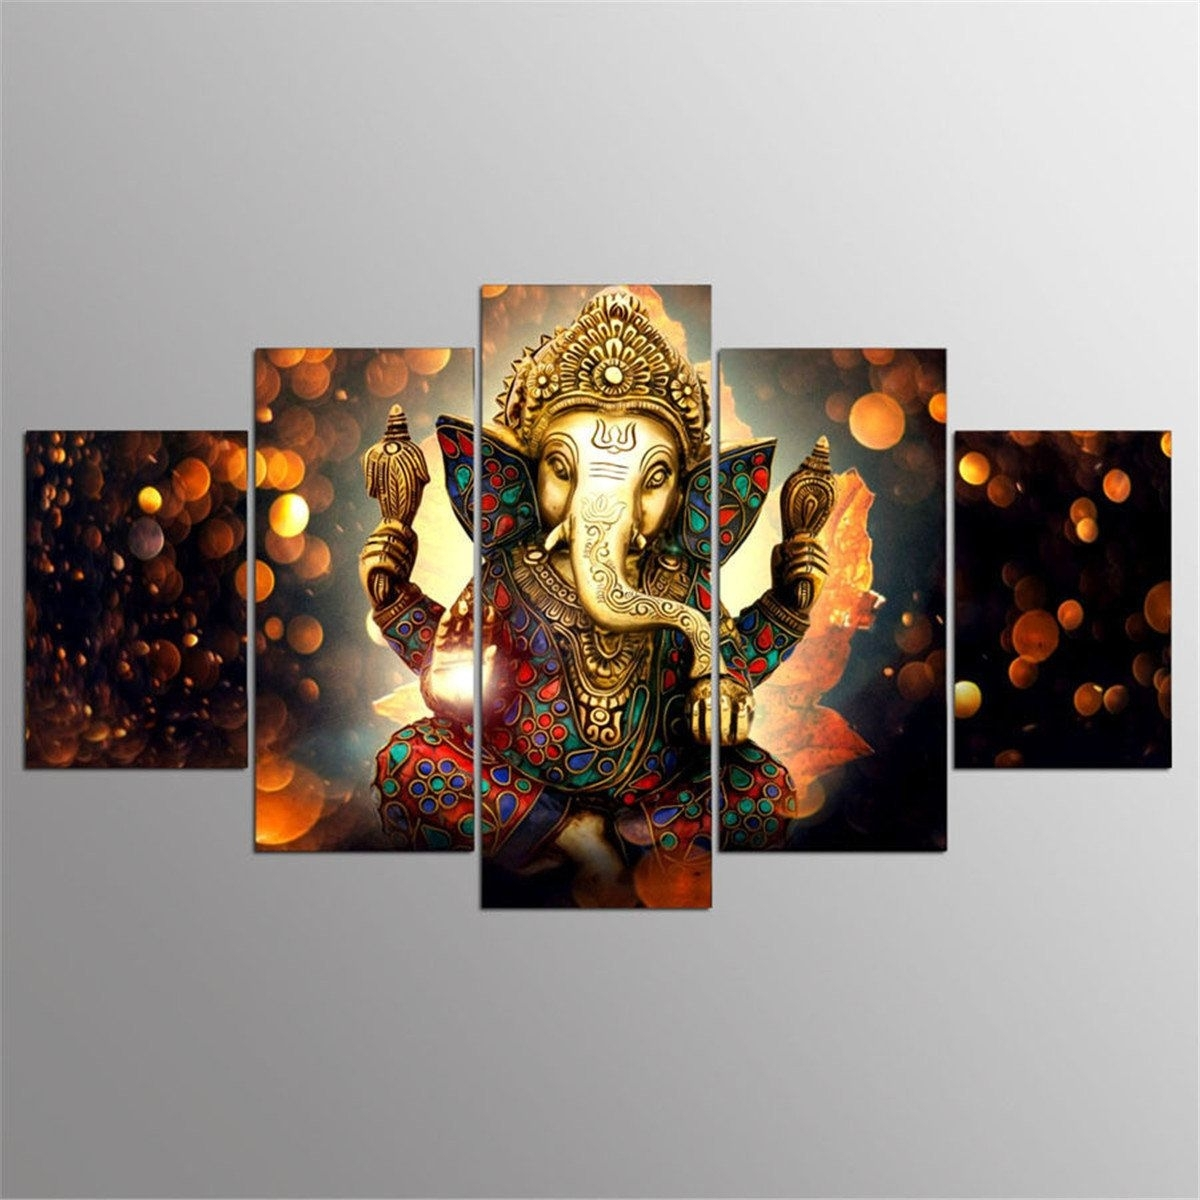 5Pcs Ganesha Painting Abstract Print Modern Canvas Wall Art Poster inside Modern Canvas Wall Art (Image 6 of 20)